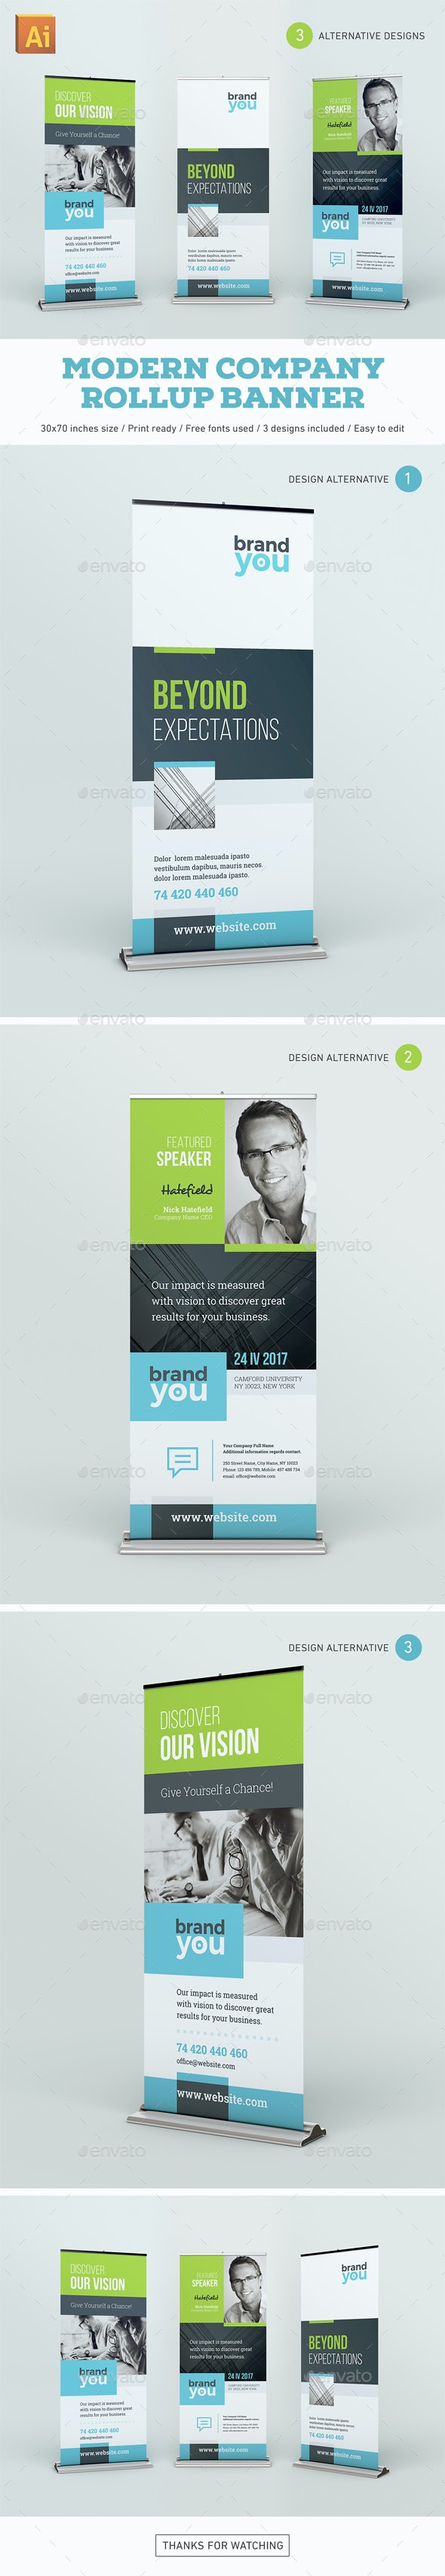 Modern Company Rollup Banner - Signage Print Templates